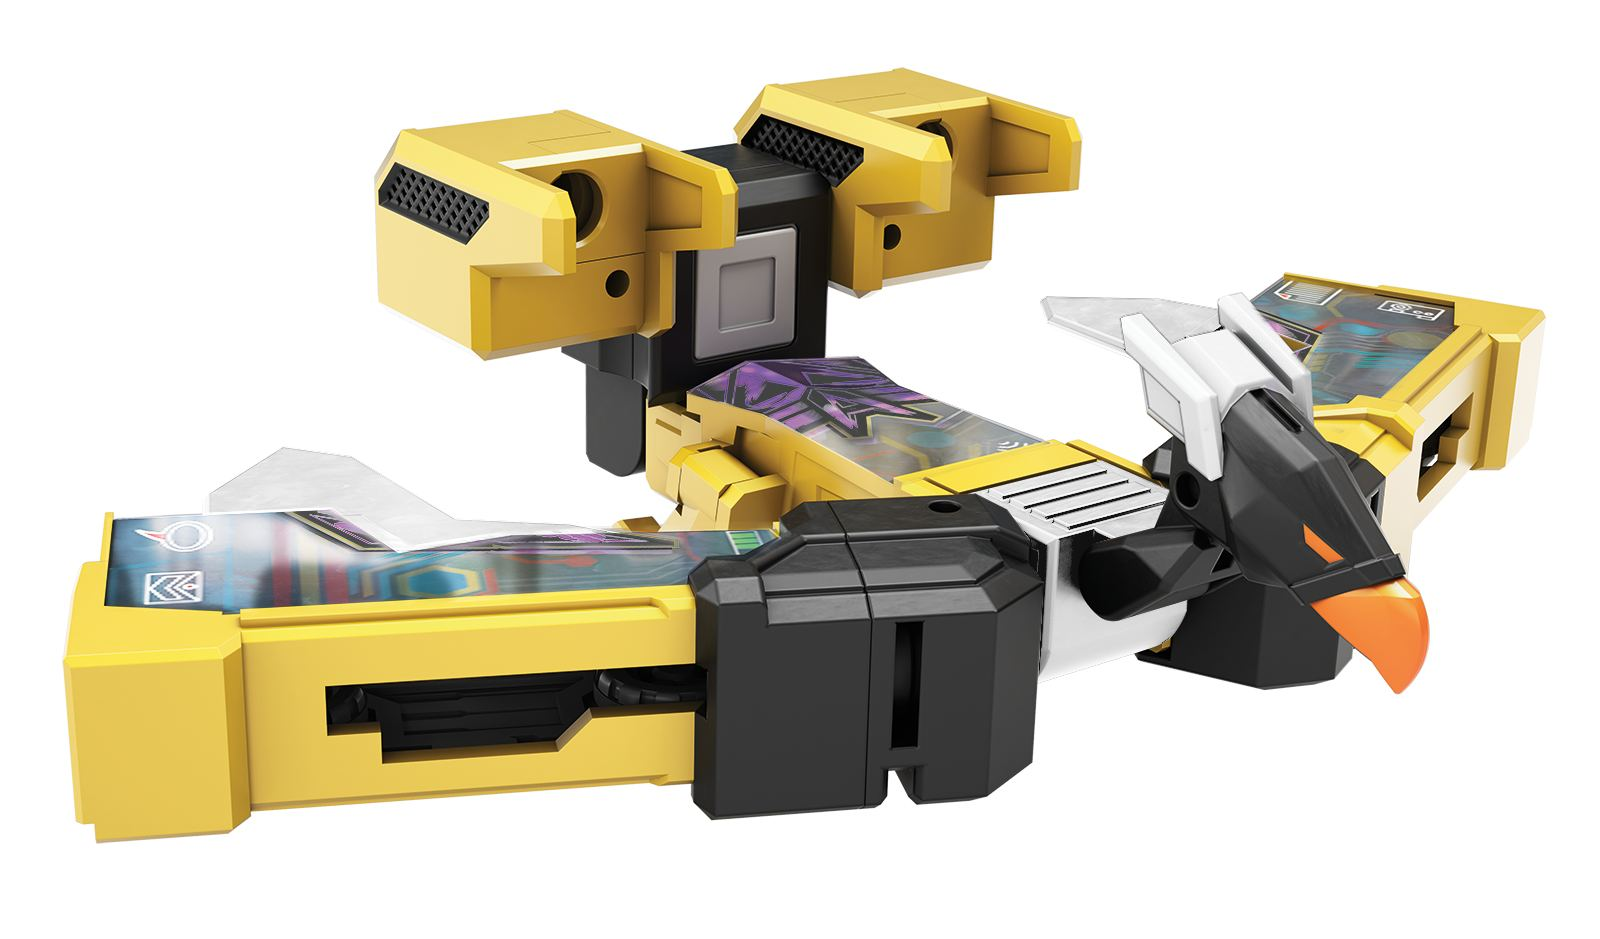 Transformers Generations Combiner Wars Buzzsaw